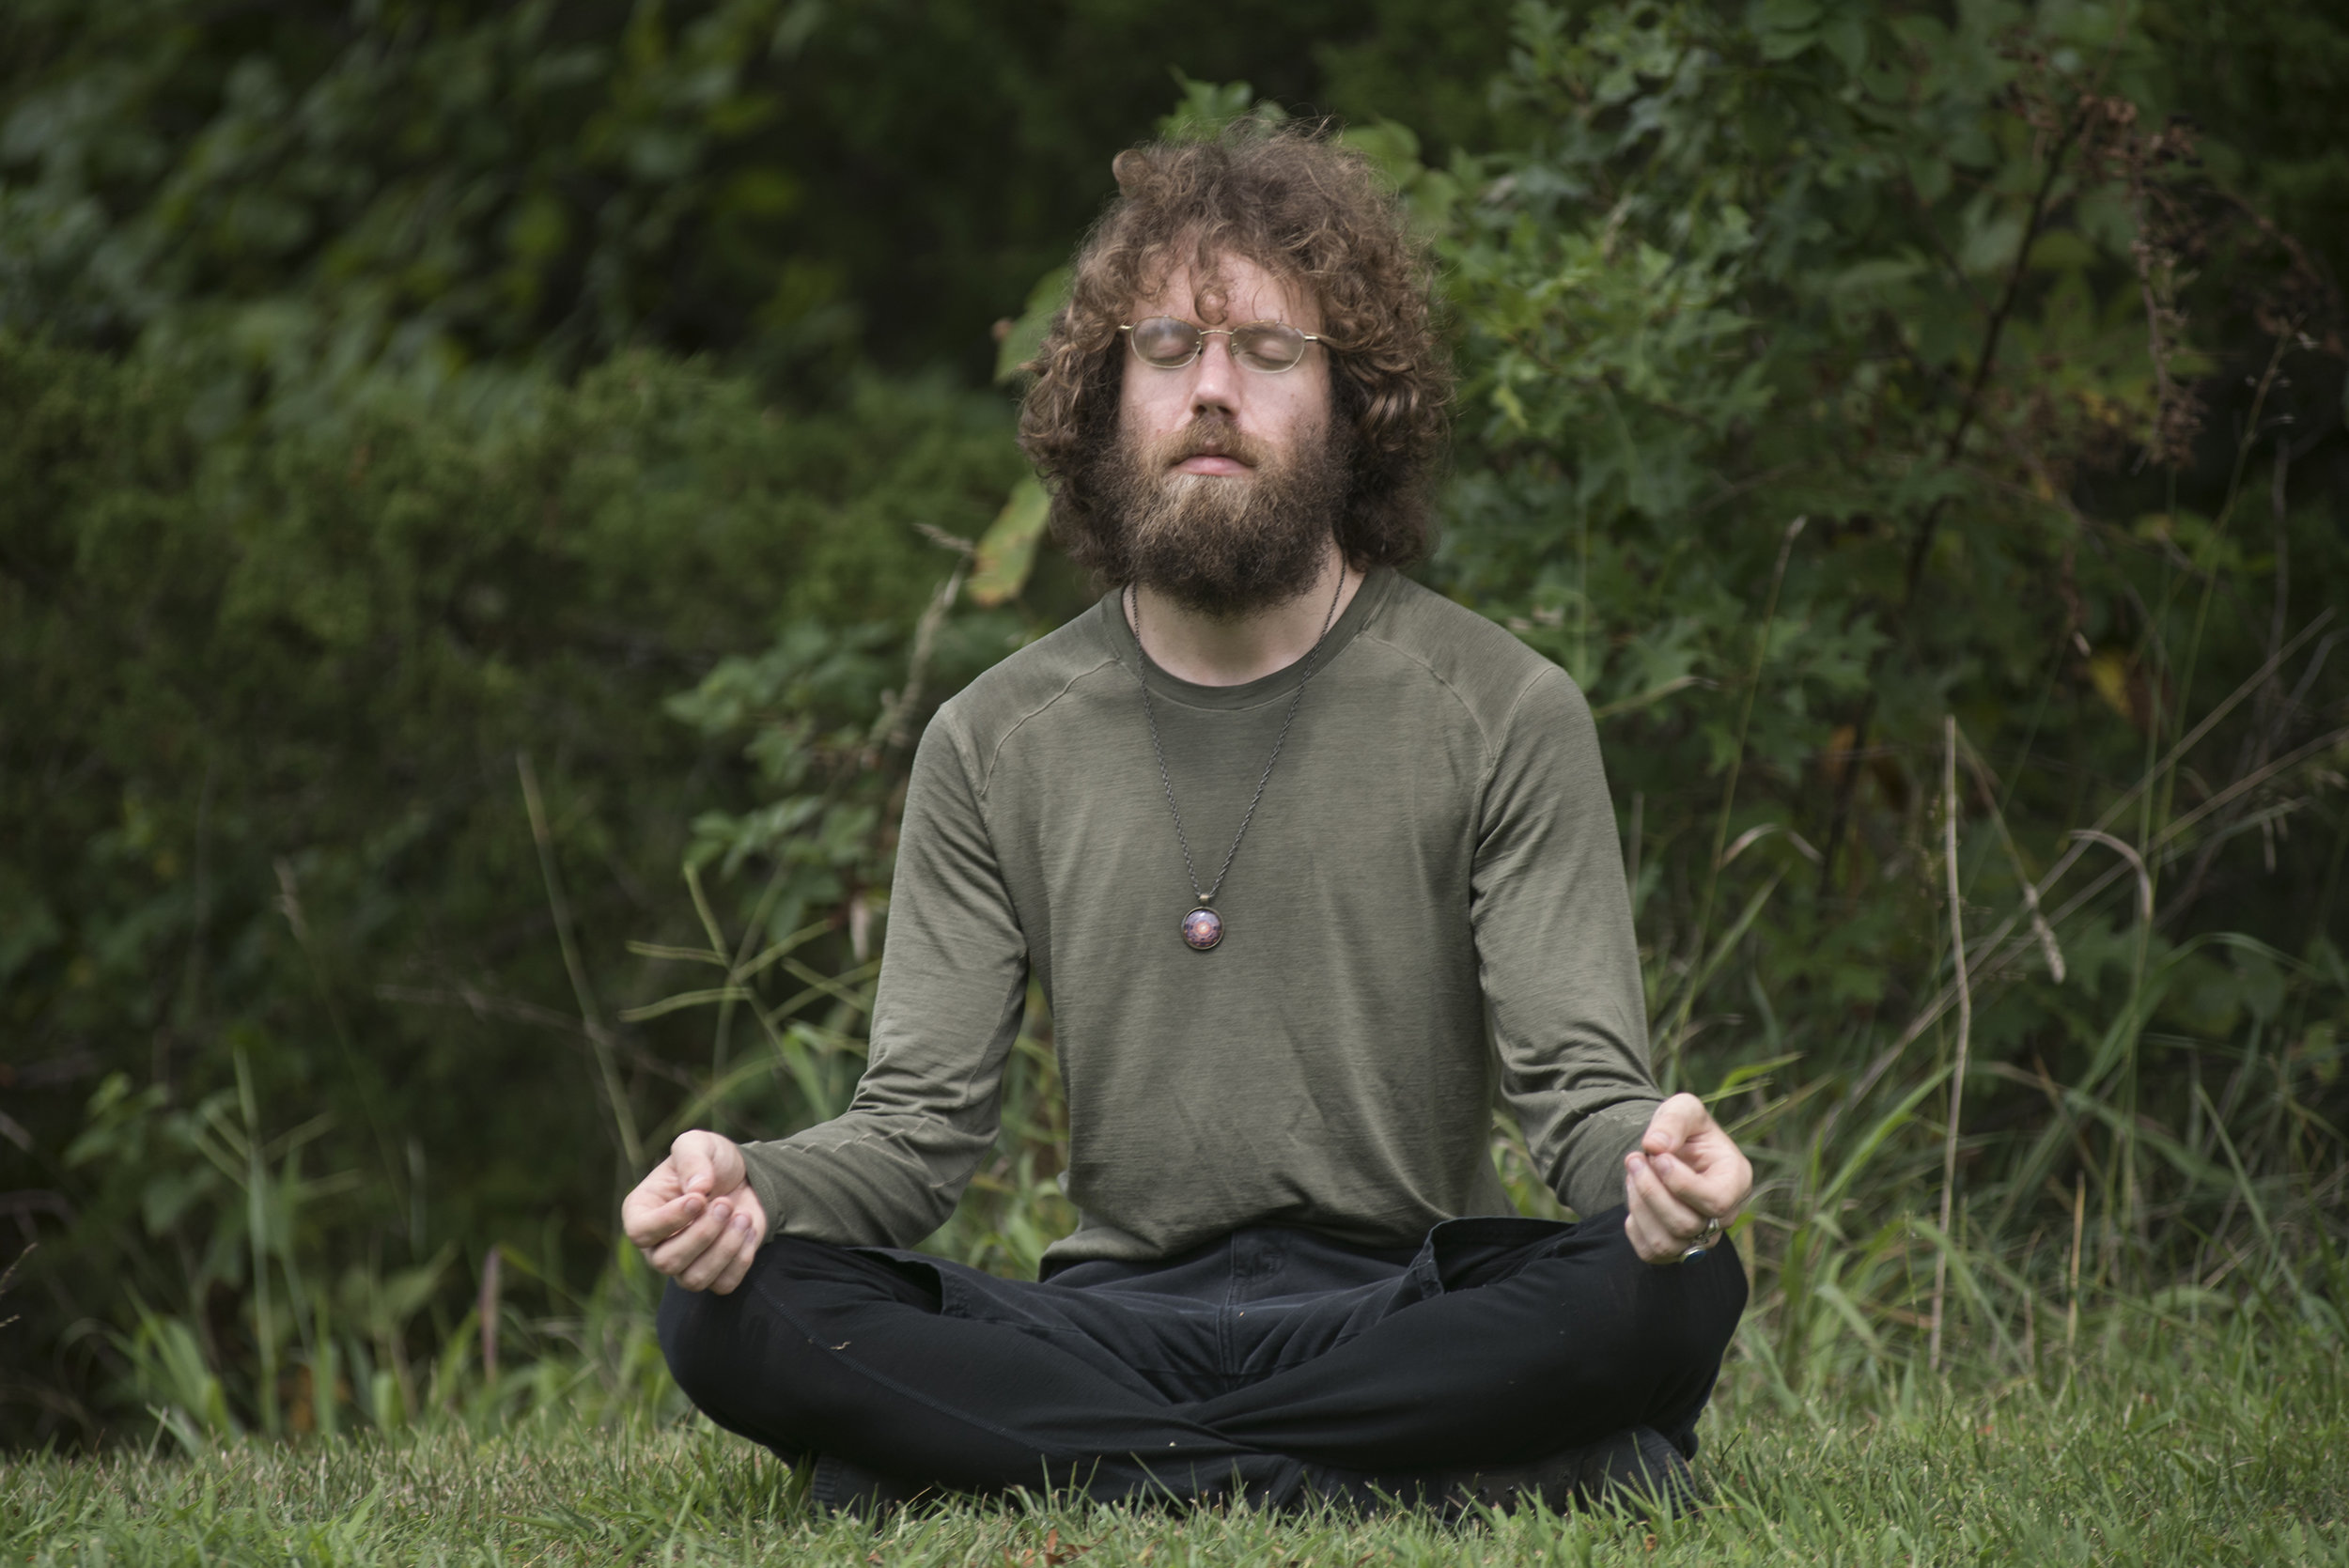 Frater Dominion meditates in preparation for the total solar eclipse.Many members of the pagan community find meditation an important part of getting in touch with themselves and finding an inner peace.